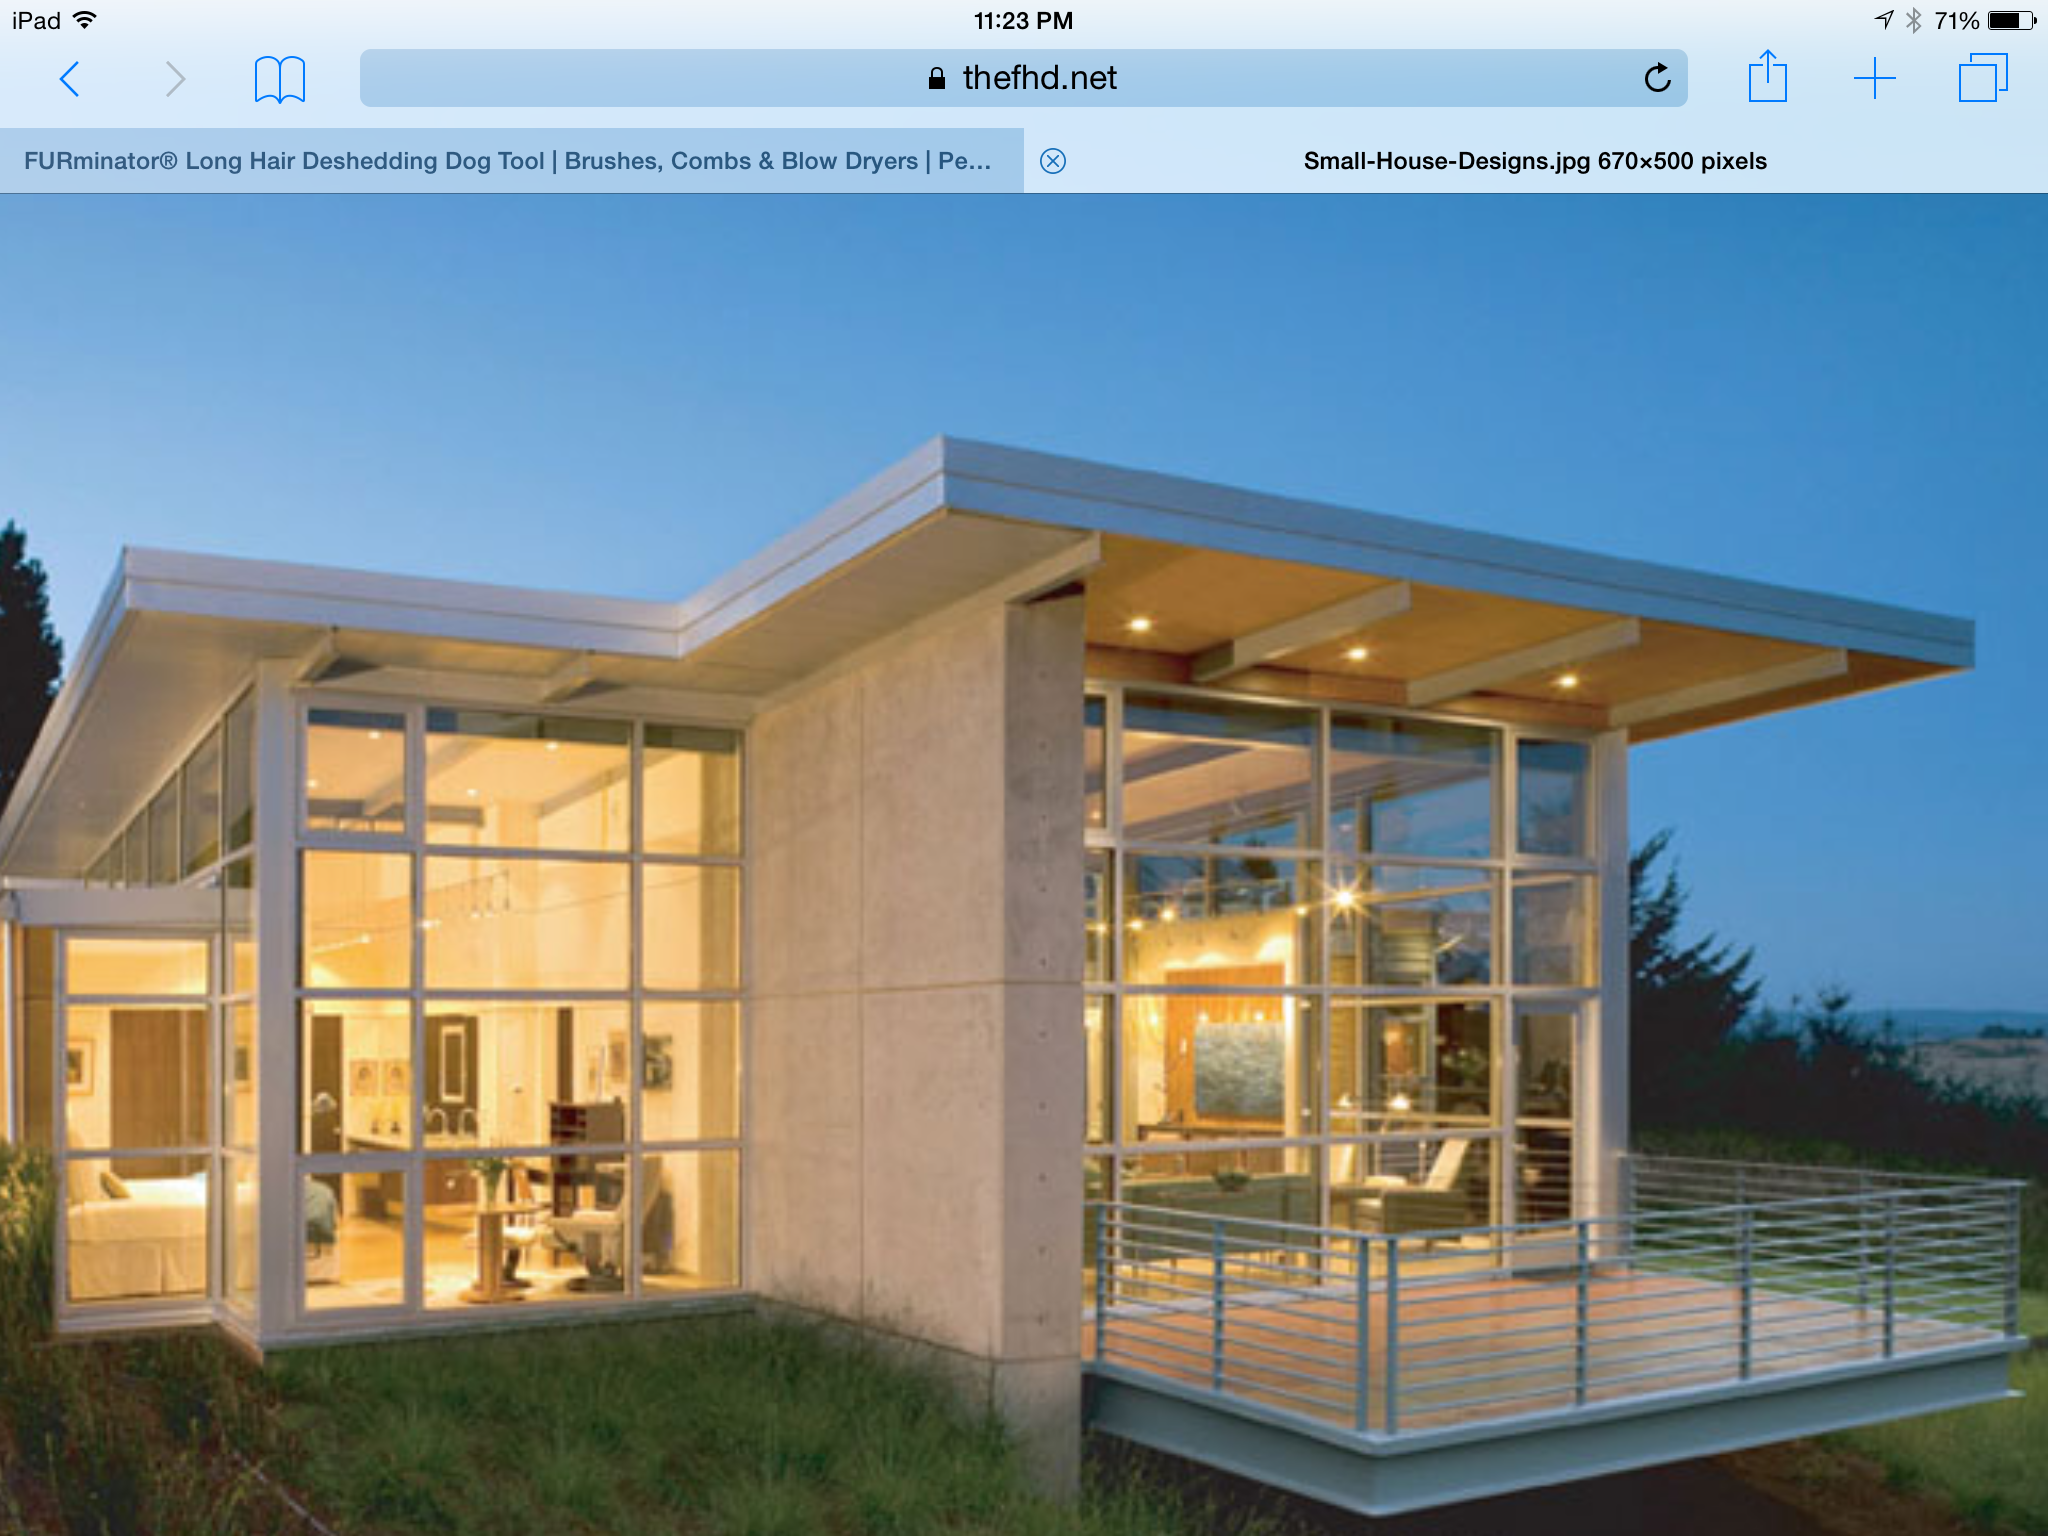 House Small HomesGoogle SearchYahoo SearchDesign